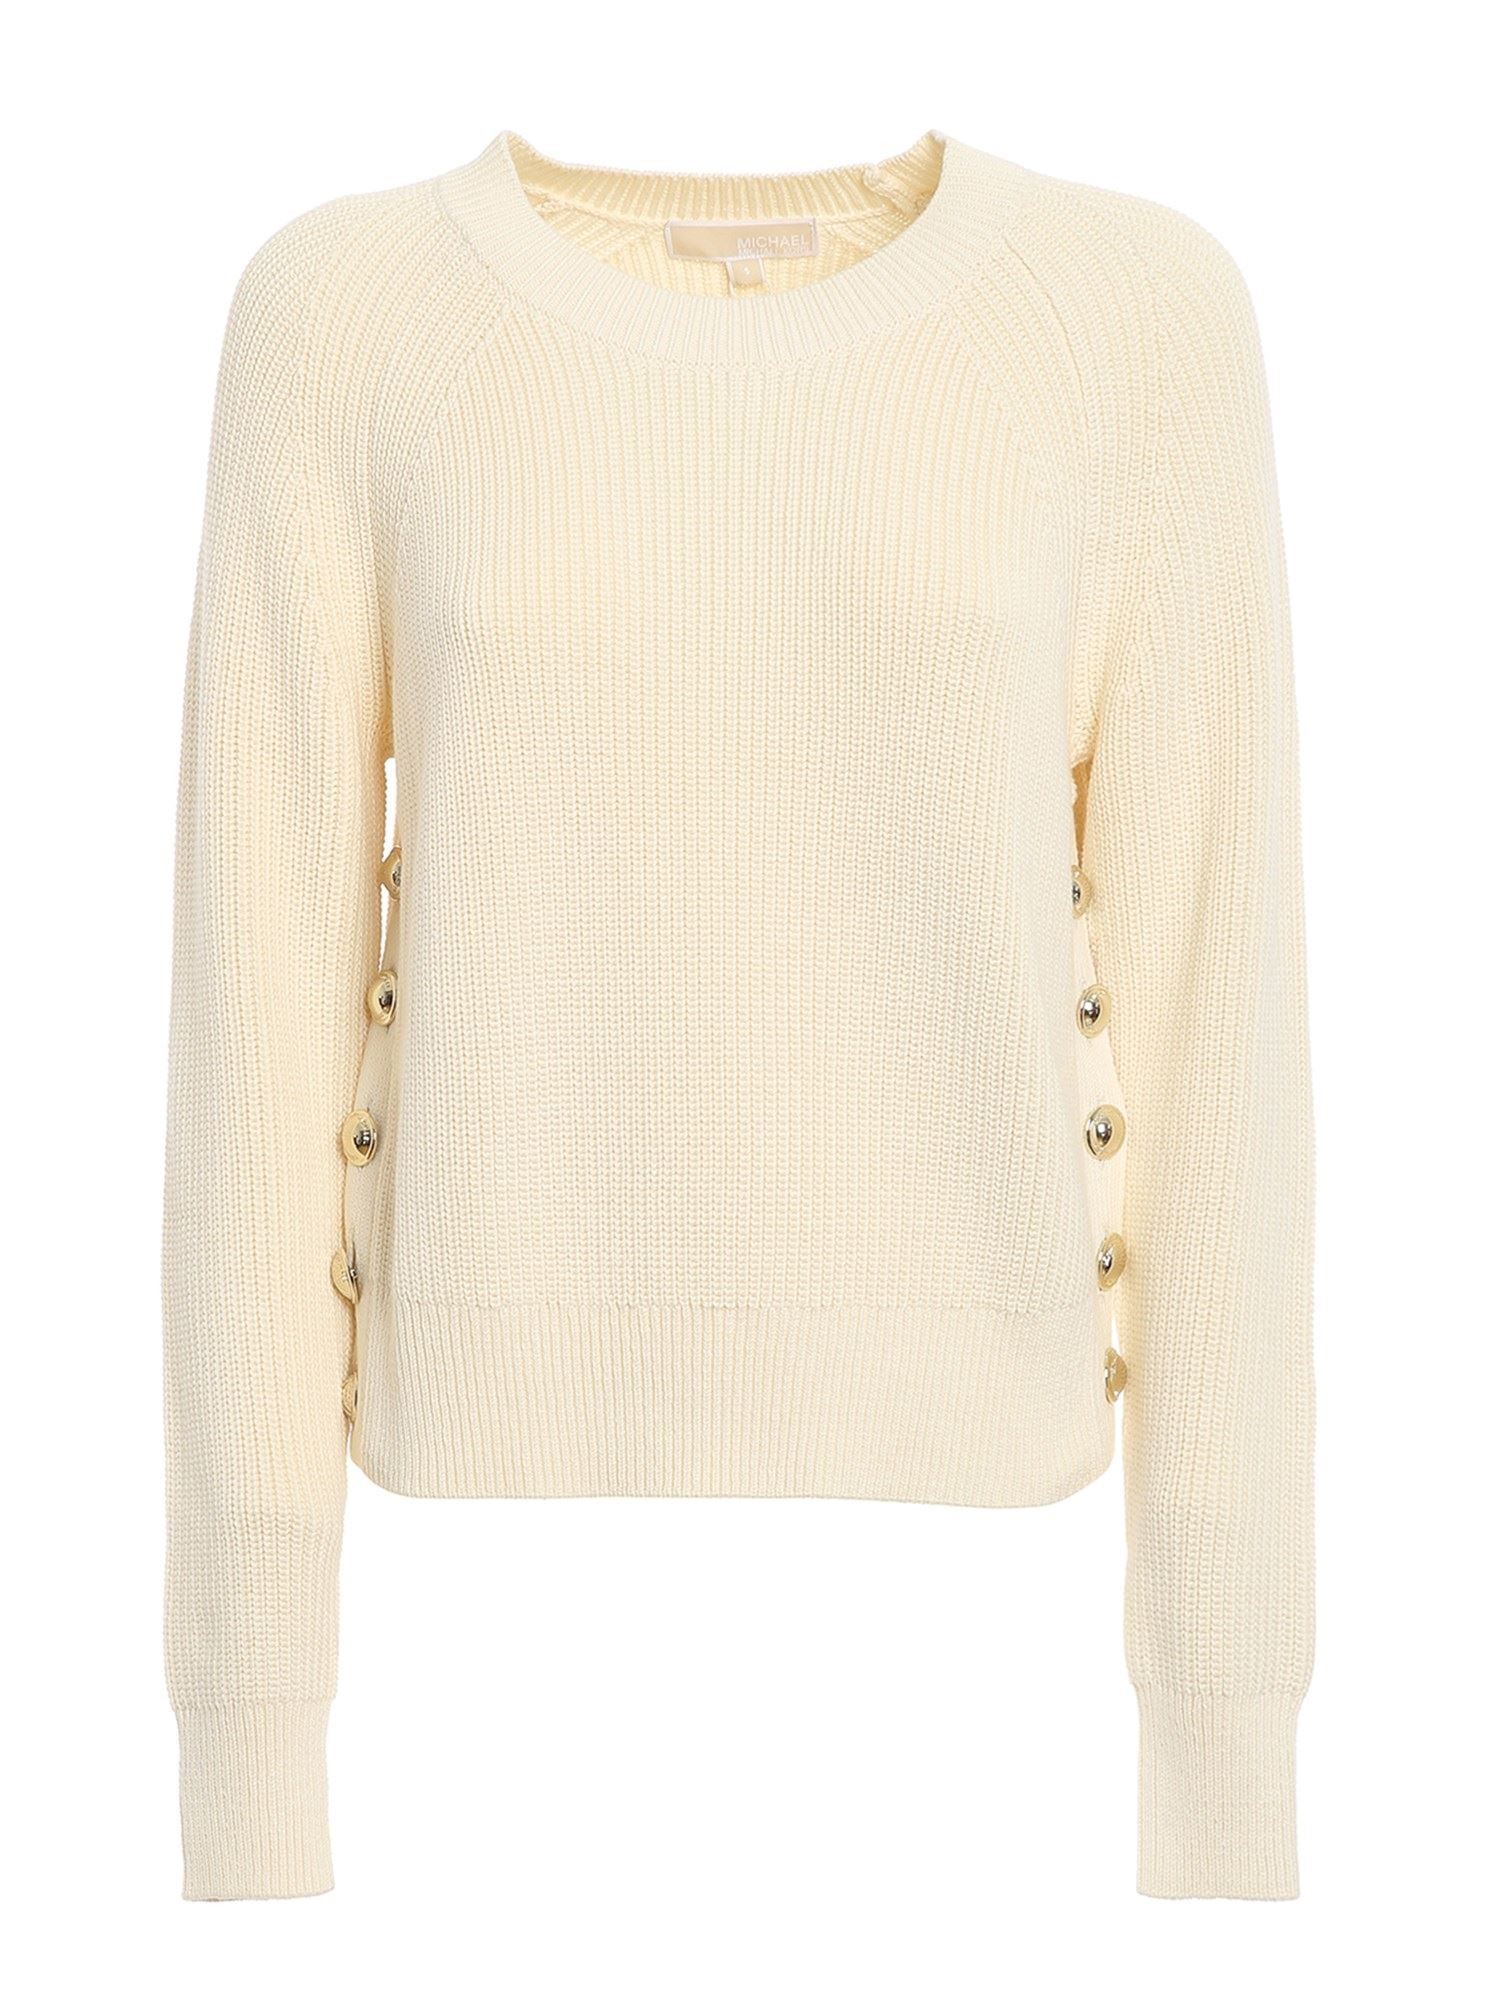 Michael Kors SIDE BUTTONS SWEATER IN WHITE